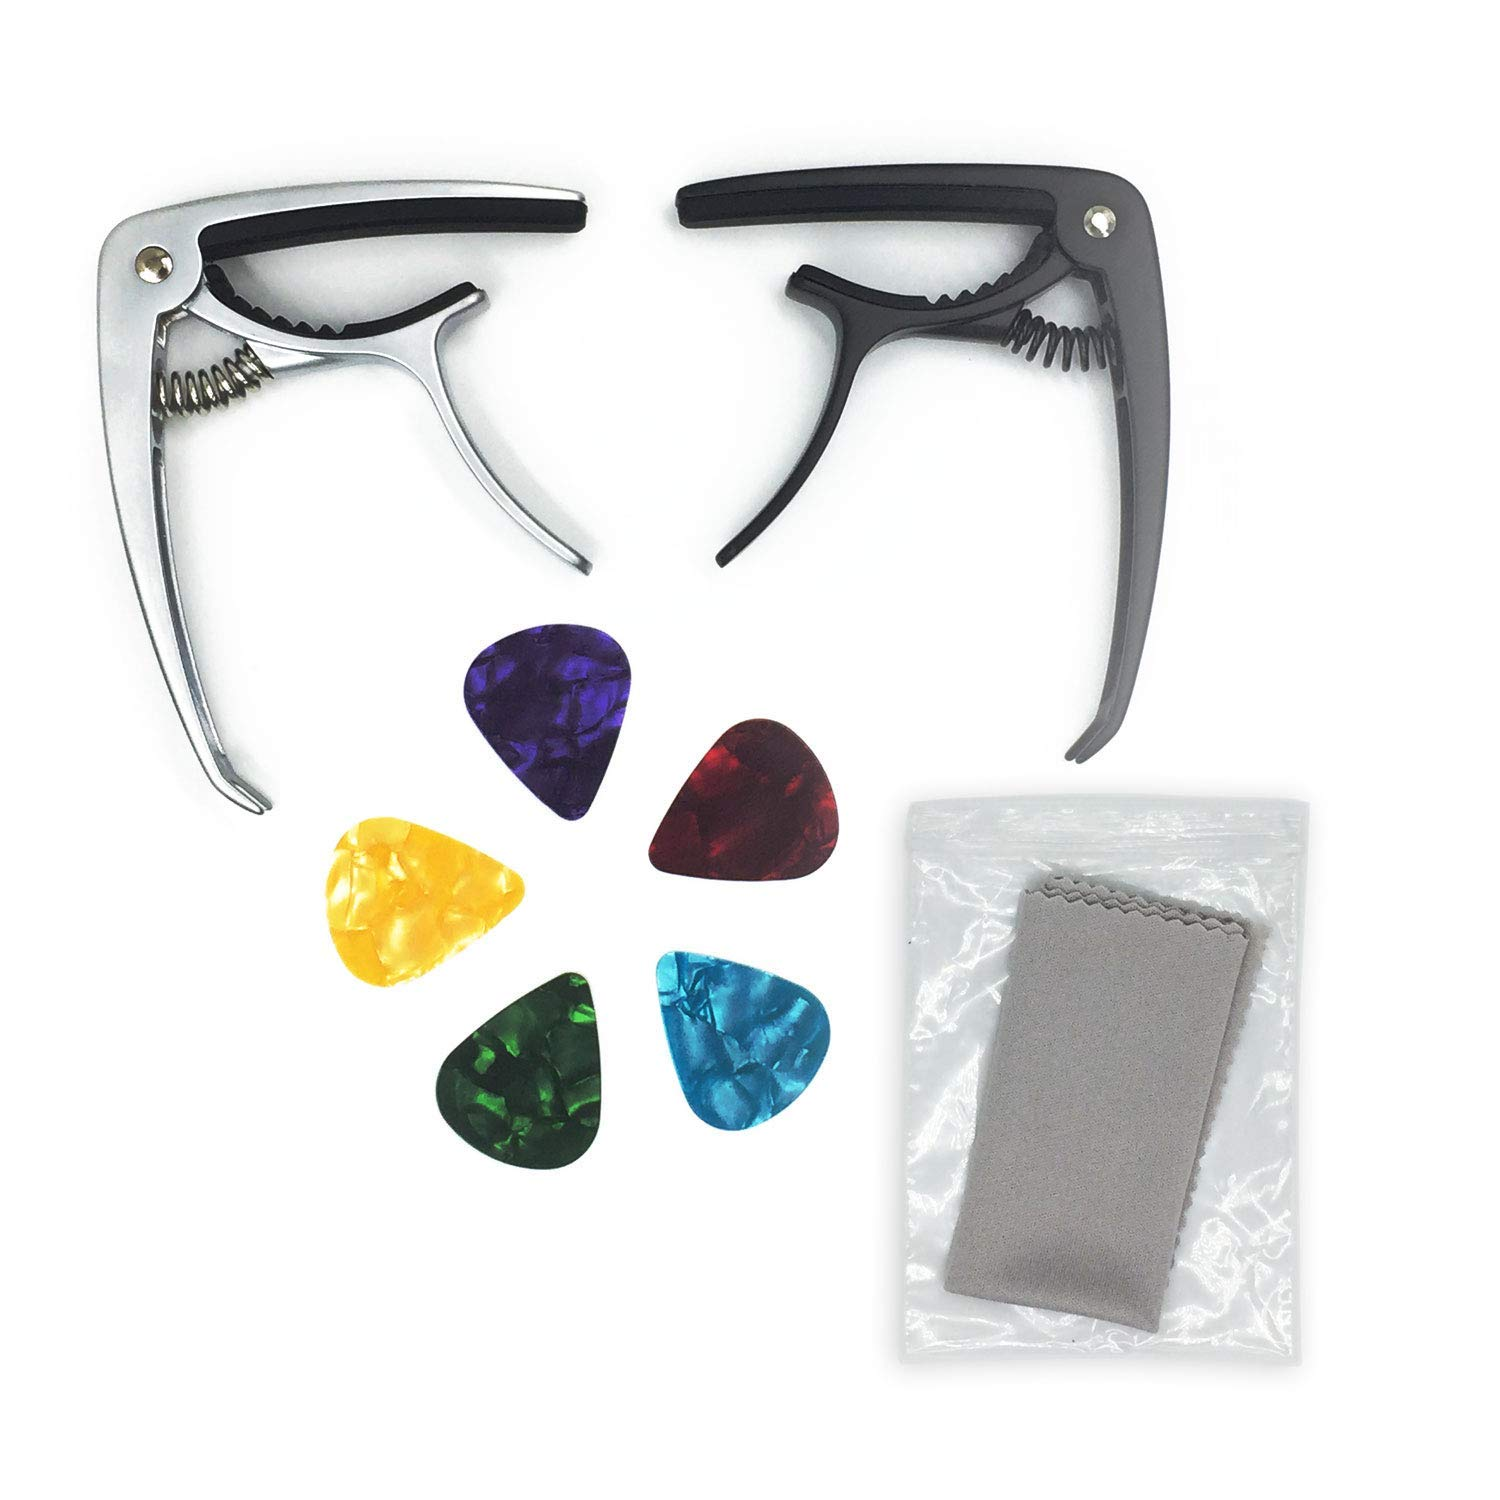 Guitar Capo Ukulele Capo Made of Zinc Alloy for Acoustic and Electric Guitars, Ukulele and Banjo (2 Pack) with 5 Bonus Colorful Guitar Picks